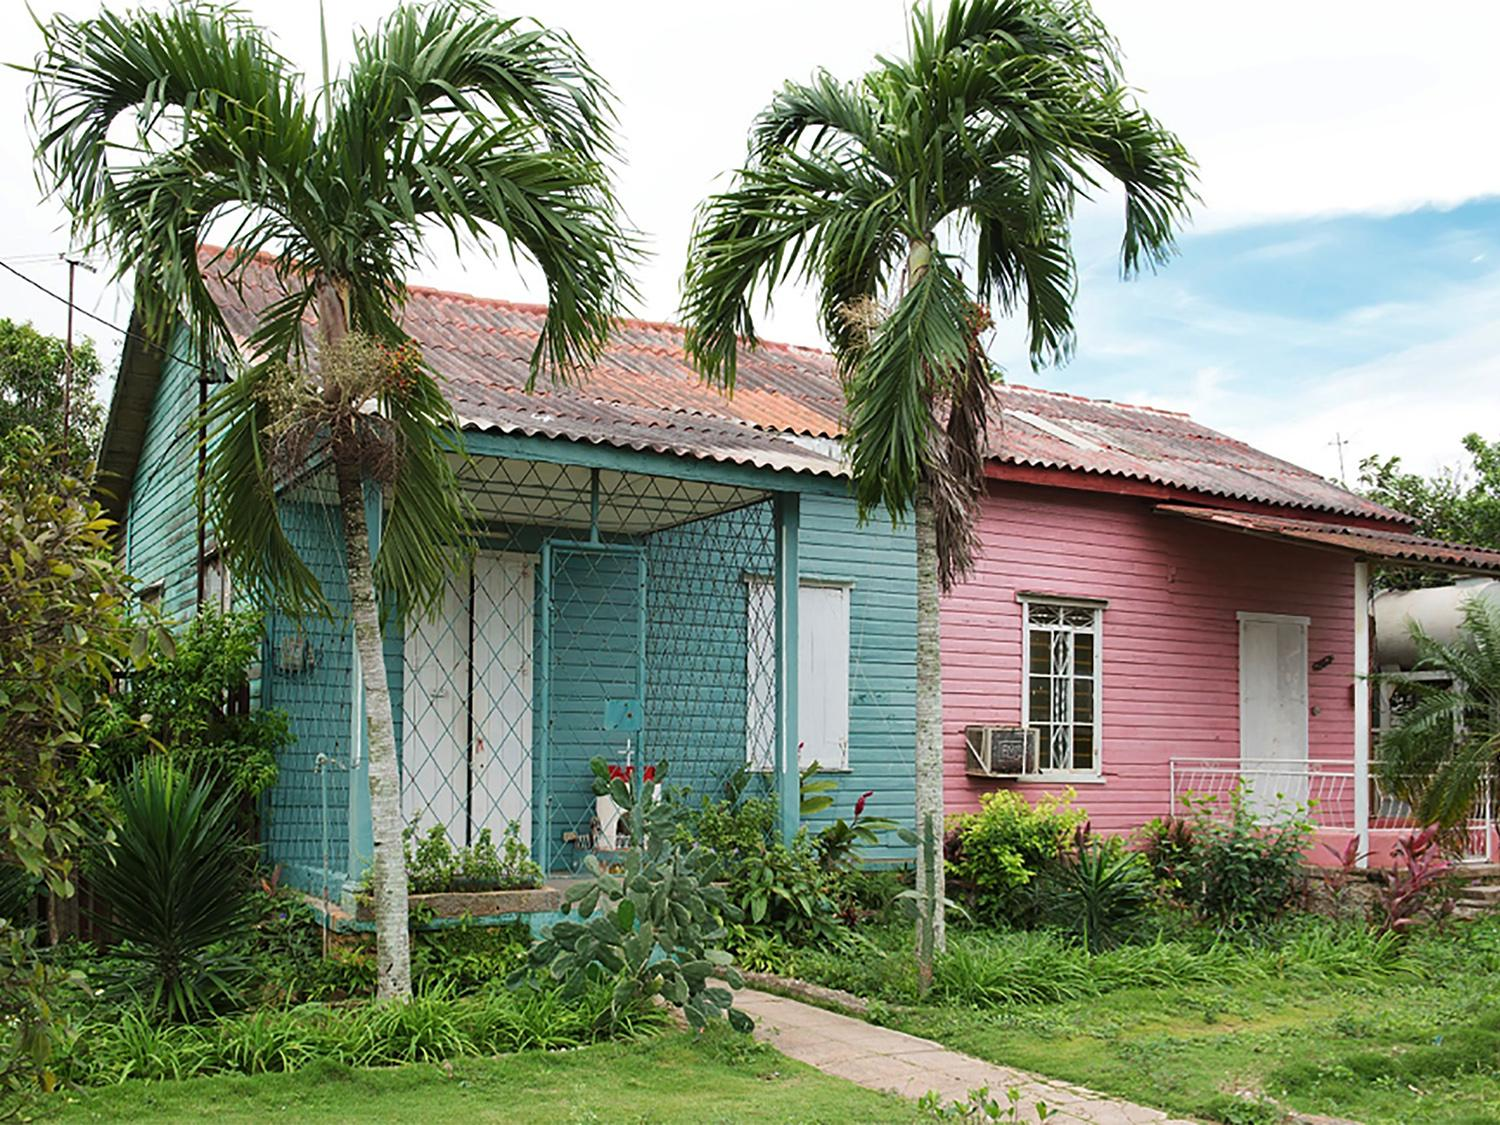 Vibrant colors decorate a building in Cuba